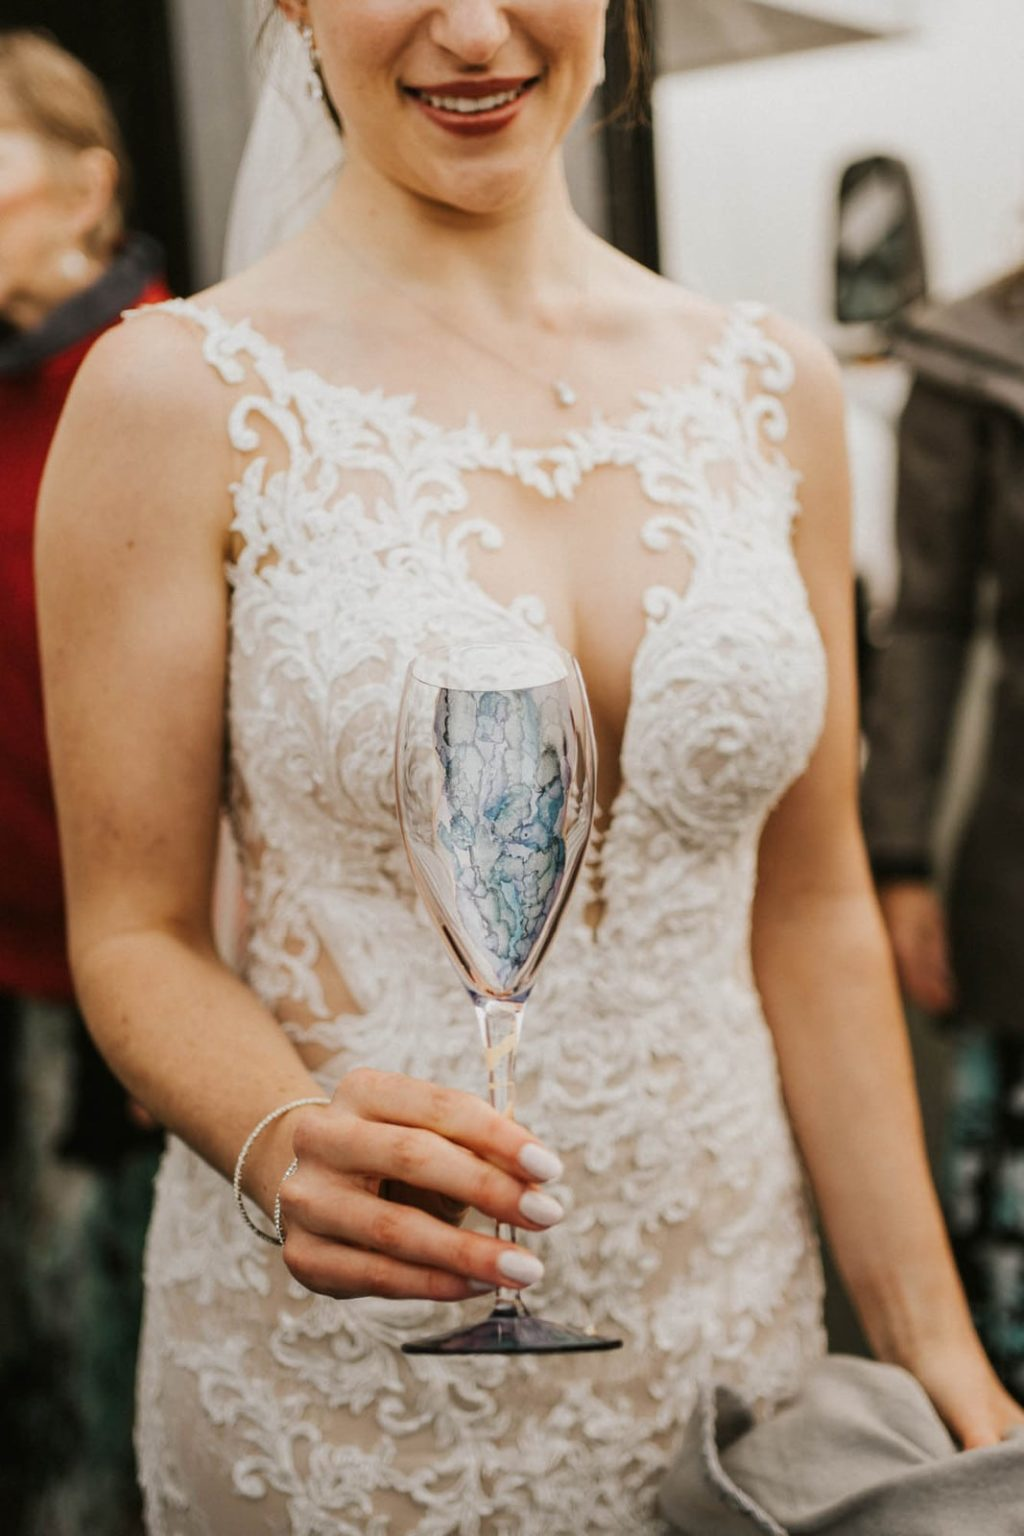 bride holding champagne glass